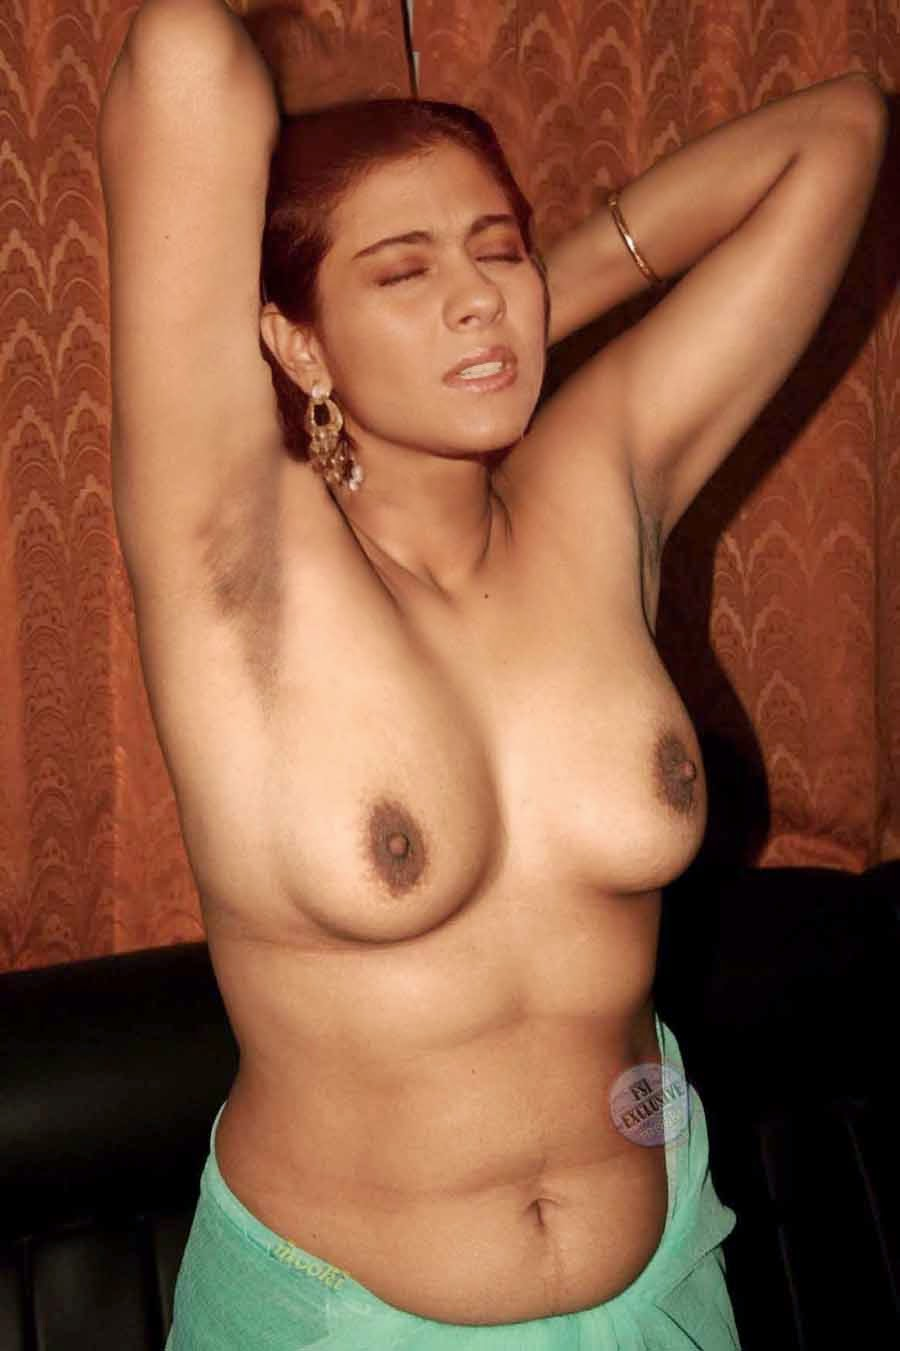 Young little girl naked fingering